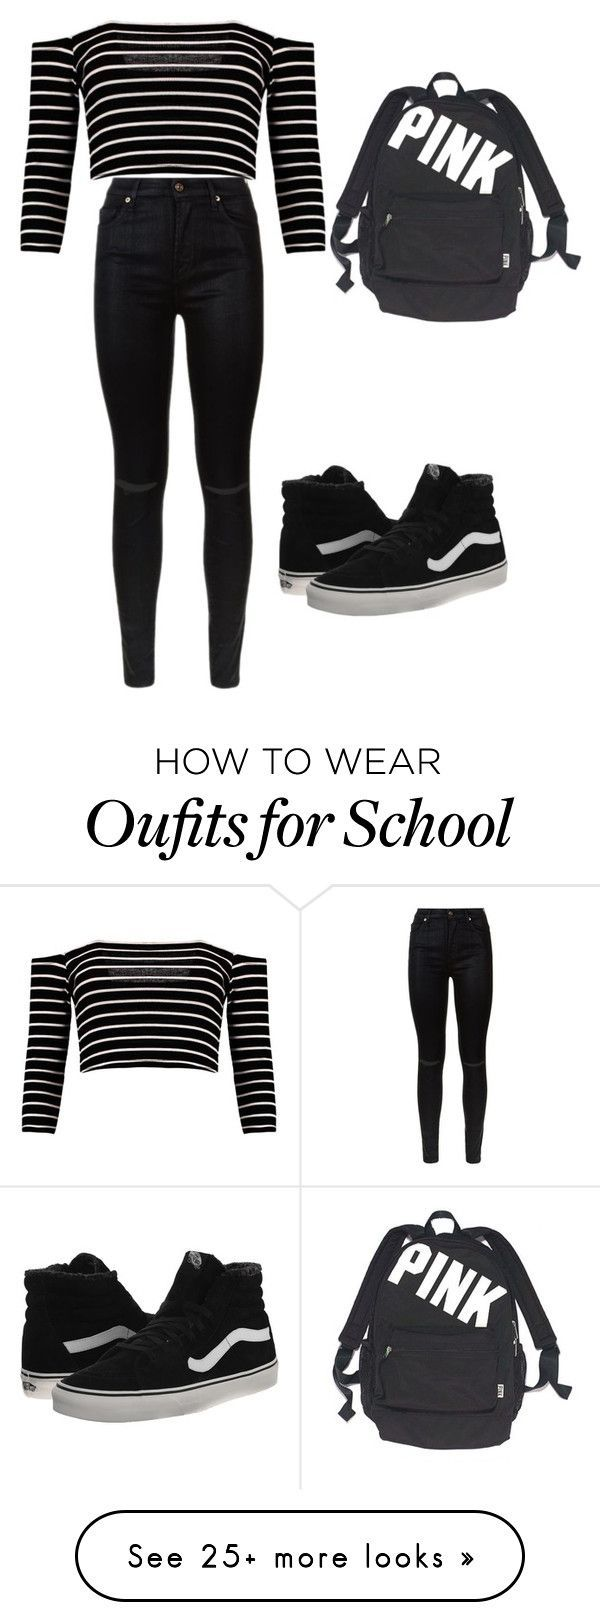 for school:)) by miskolci-andrea on Polyvore featuring 7 For All Mankind, Vans and Victorias Secret